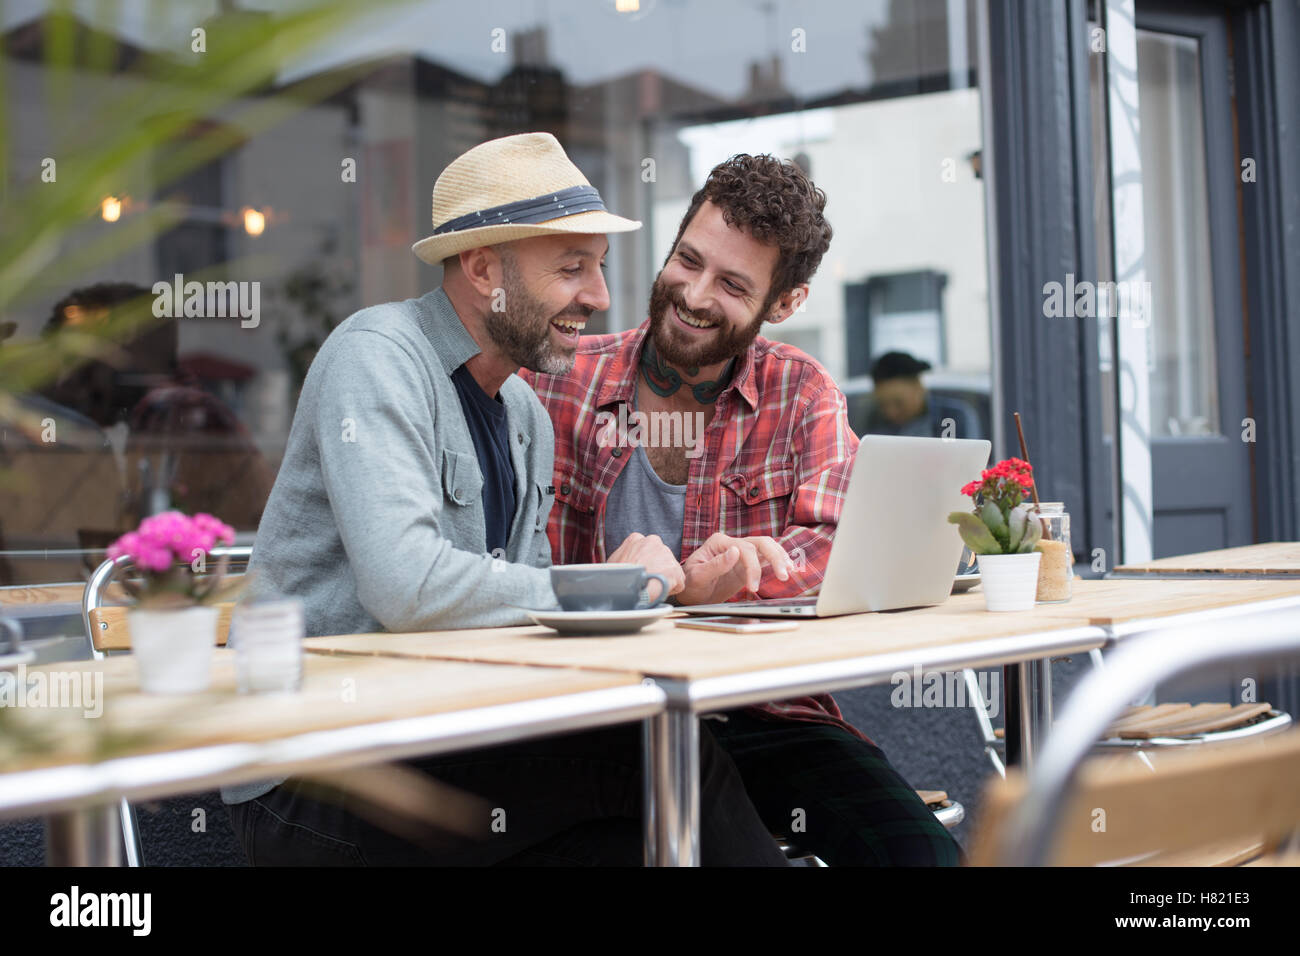 Gay couple sat sharing laptop in cafe - Stock Image